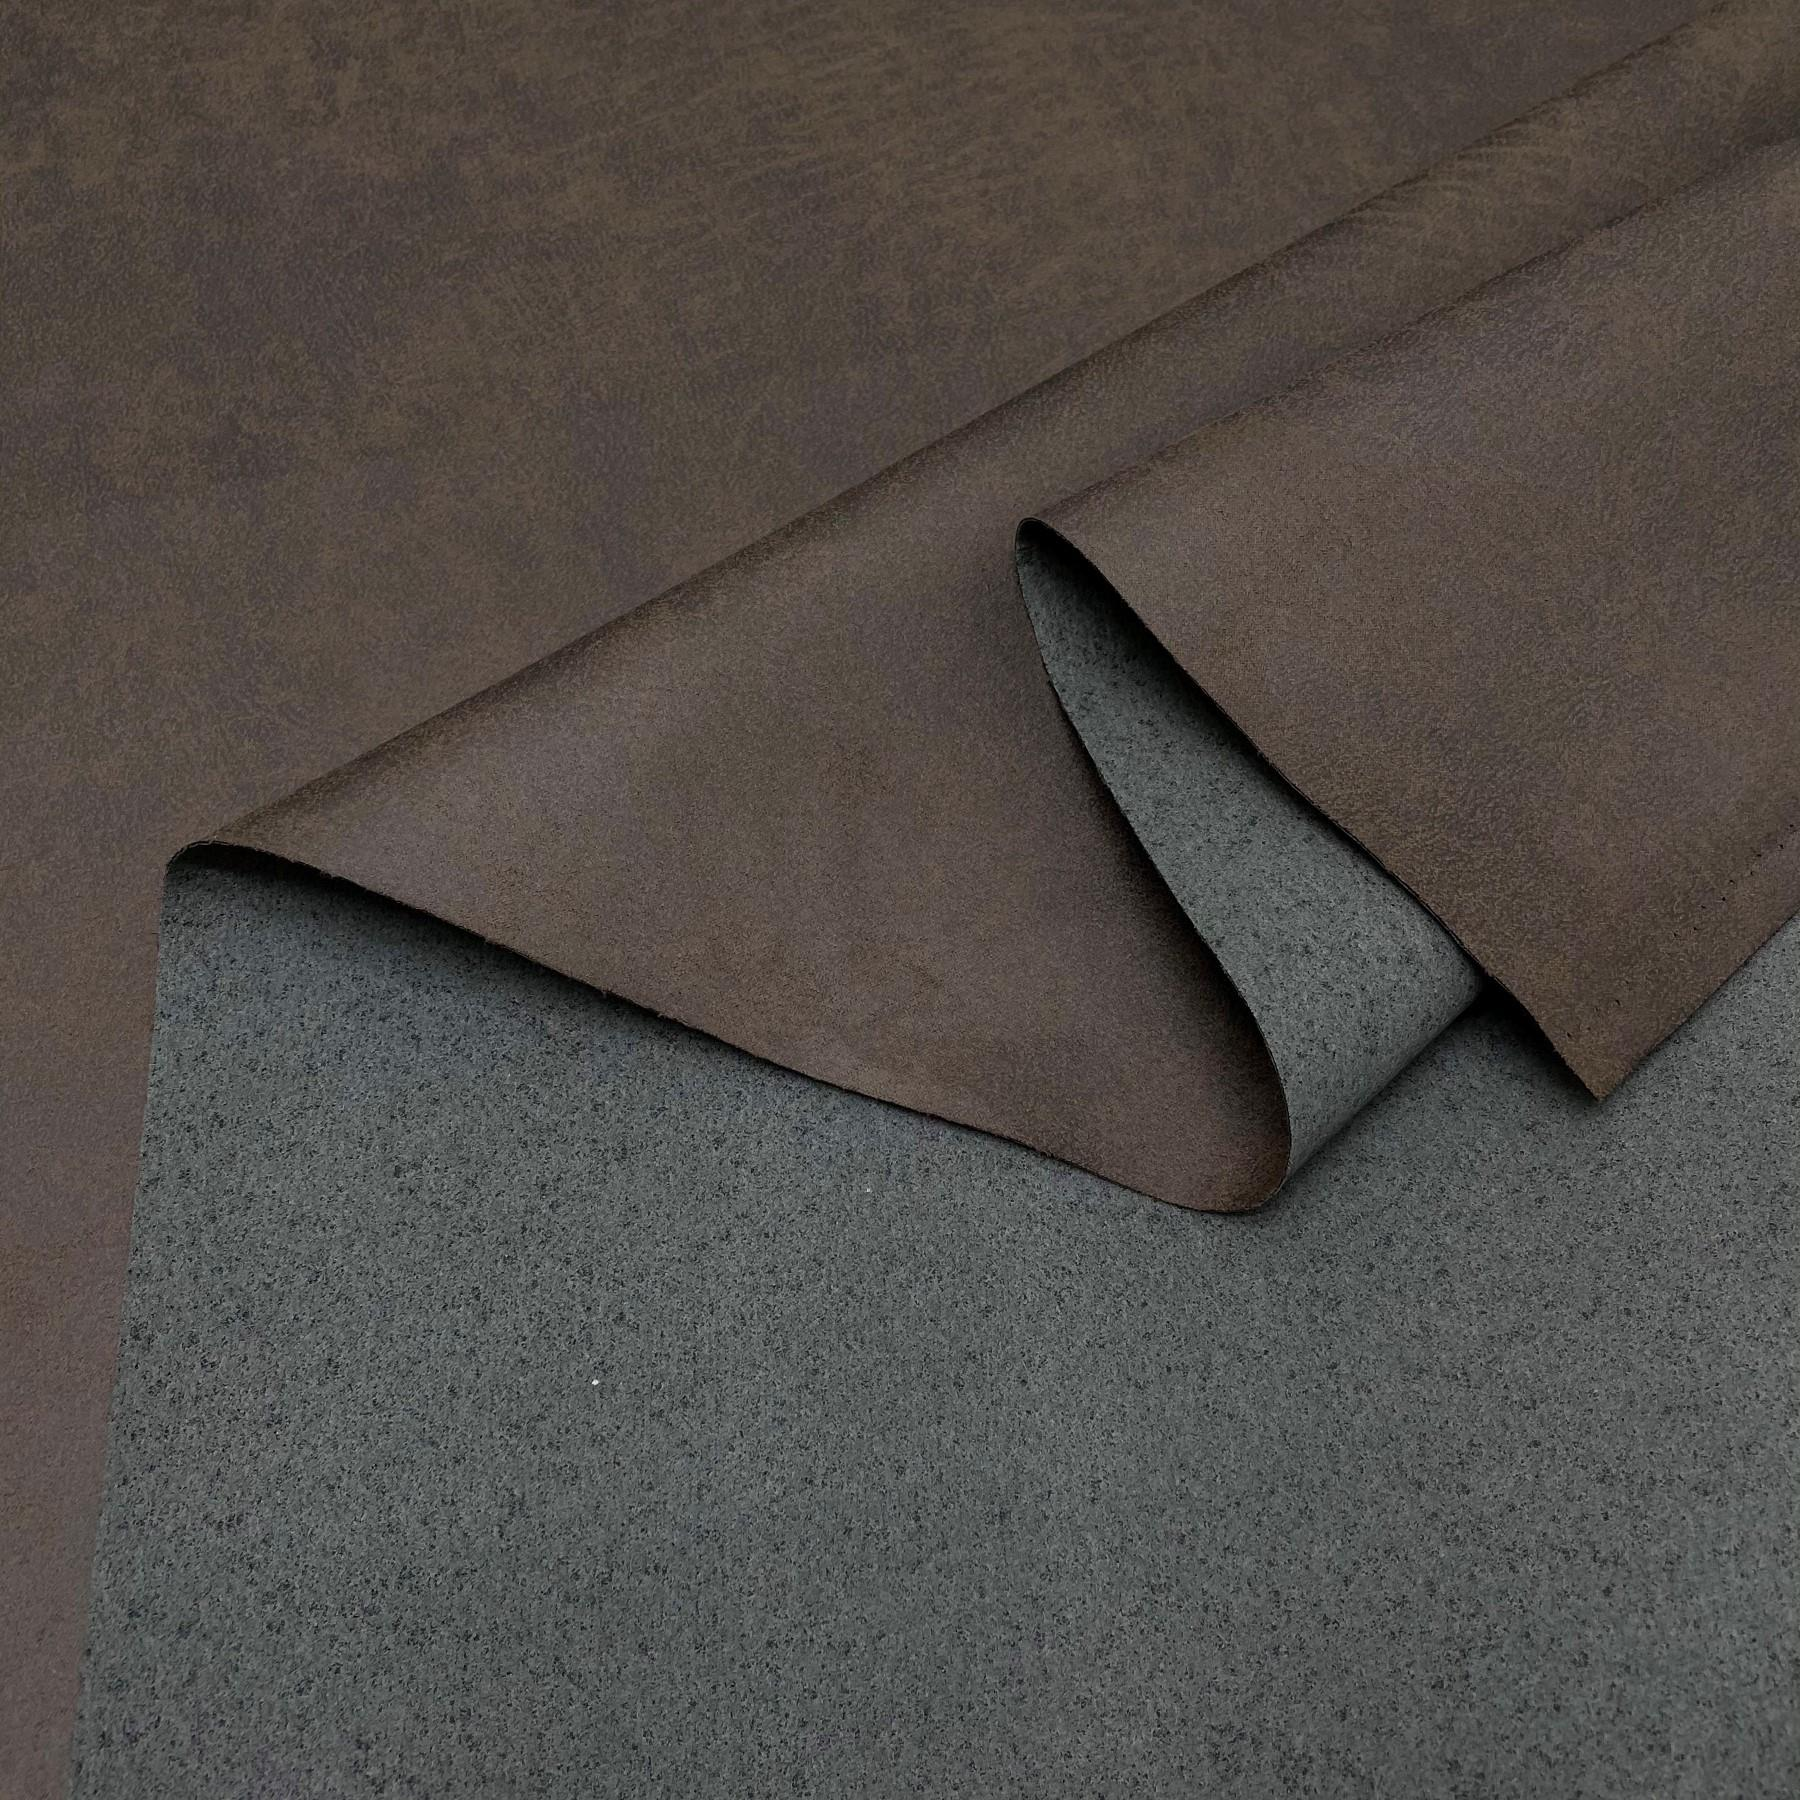 thumbnail 29 - AGED BROWN DISTRESSED ANTIQUED SUEDE FAUX LEATHER LEATHERETTE UPHOLSTERY FABRIC